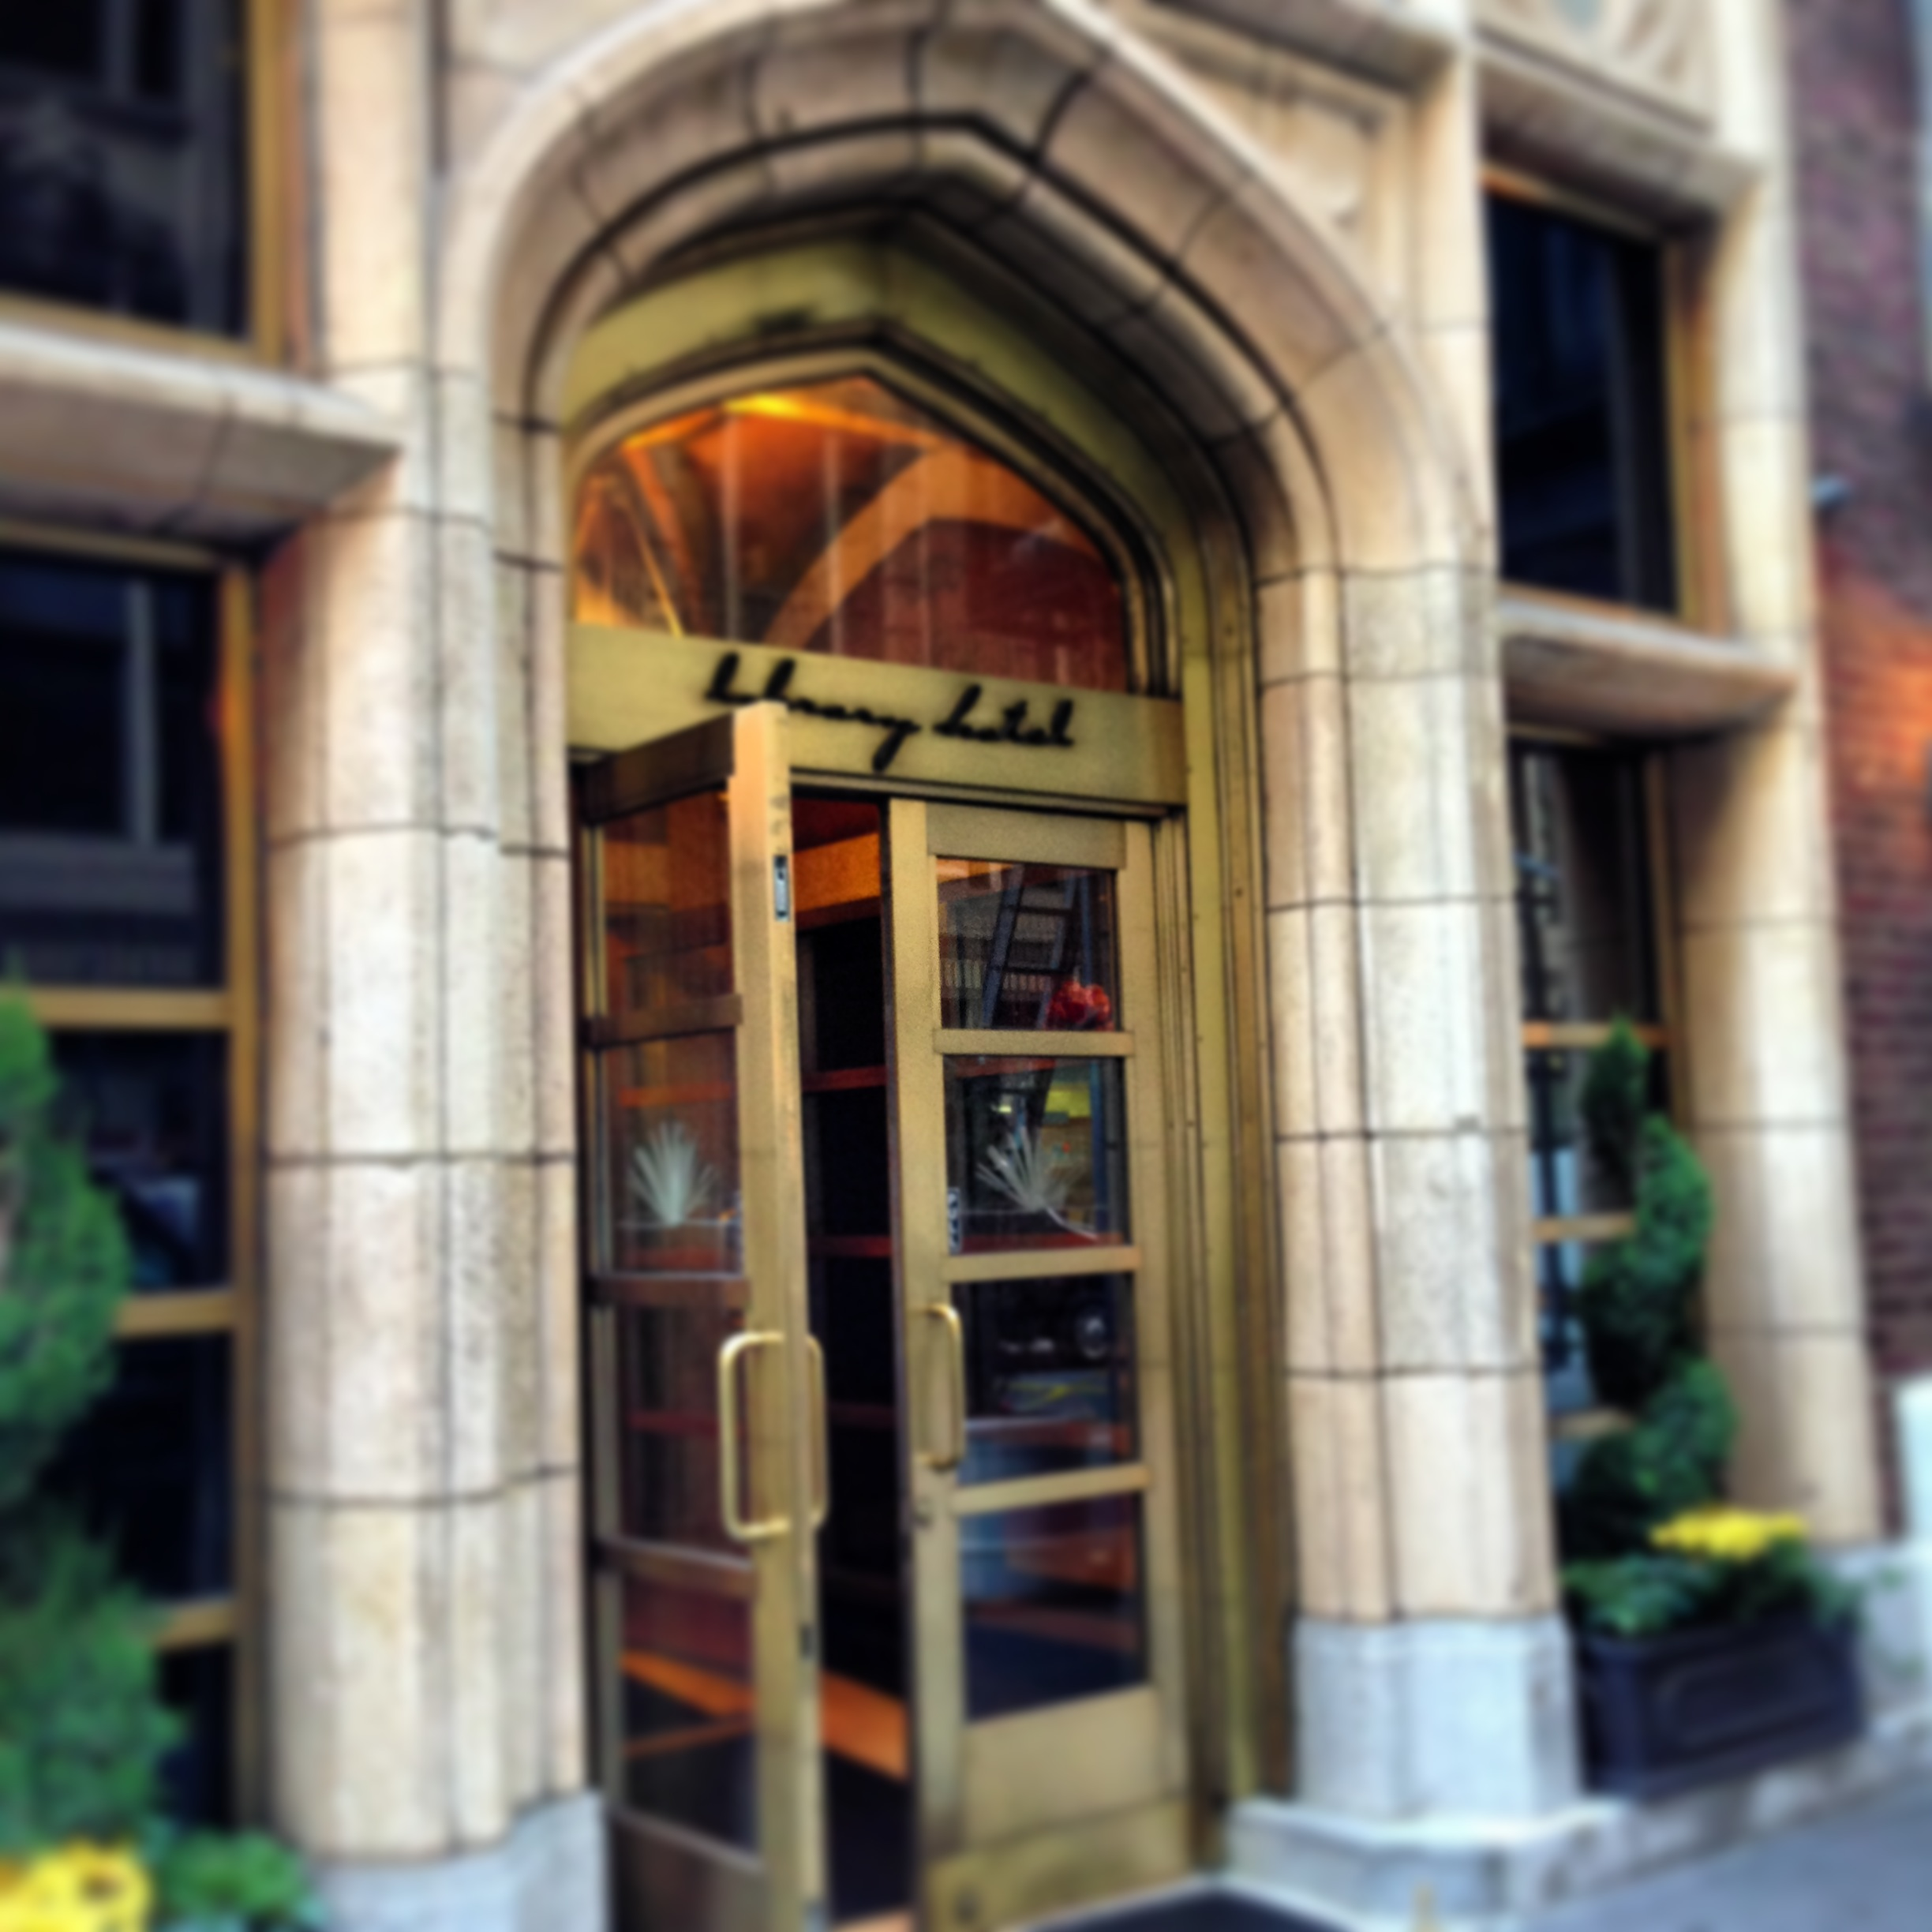 The Library Hotel Collection Features Four Characterful Hotels In Manhattan.  Last Year I Was Lucky To Visit Giraffe, Elysee And Casablanca, And On This  Trip ...